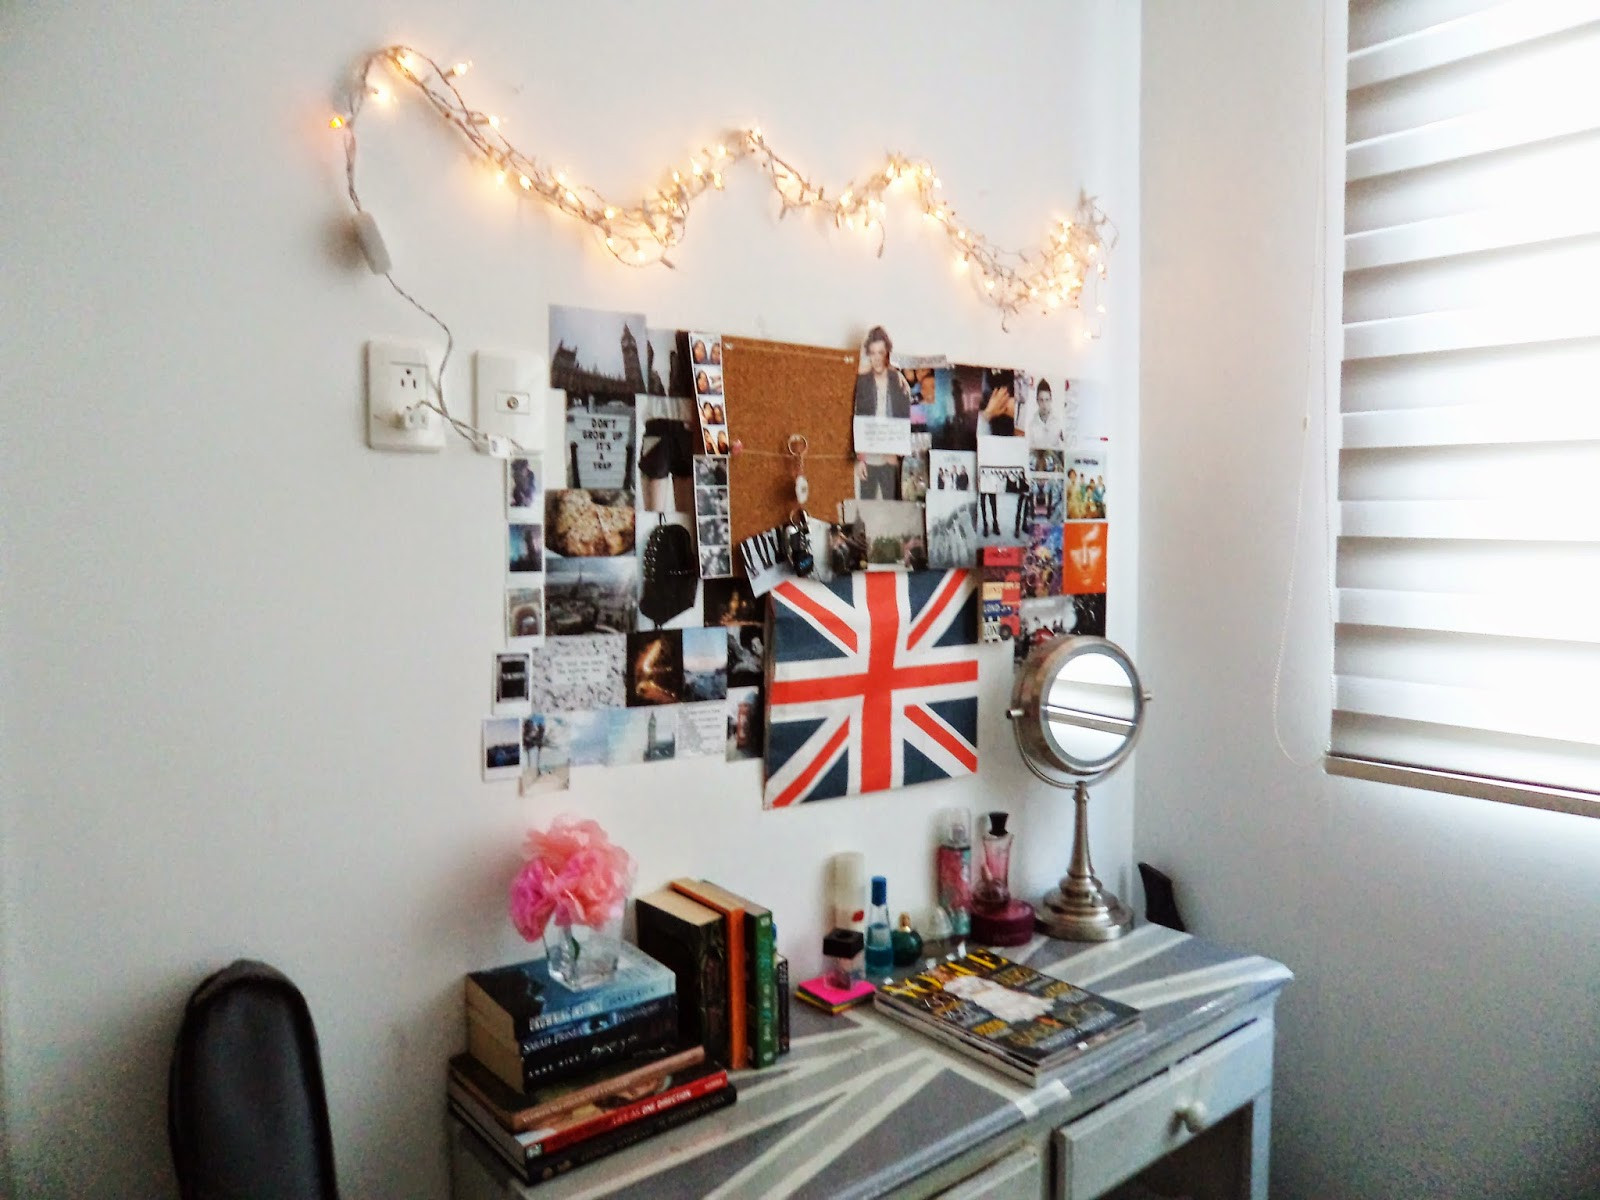 Cosas Para Decorar Tu Cuarto Adorable Diy Decora Tu Cuarto Estilo Tumblr Fácil Y Sin Gastar Of Cosas Para Decorar Tu Cuarto Adorable único Manualidades Faciles Y Sencillas Diy Decora Tu